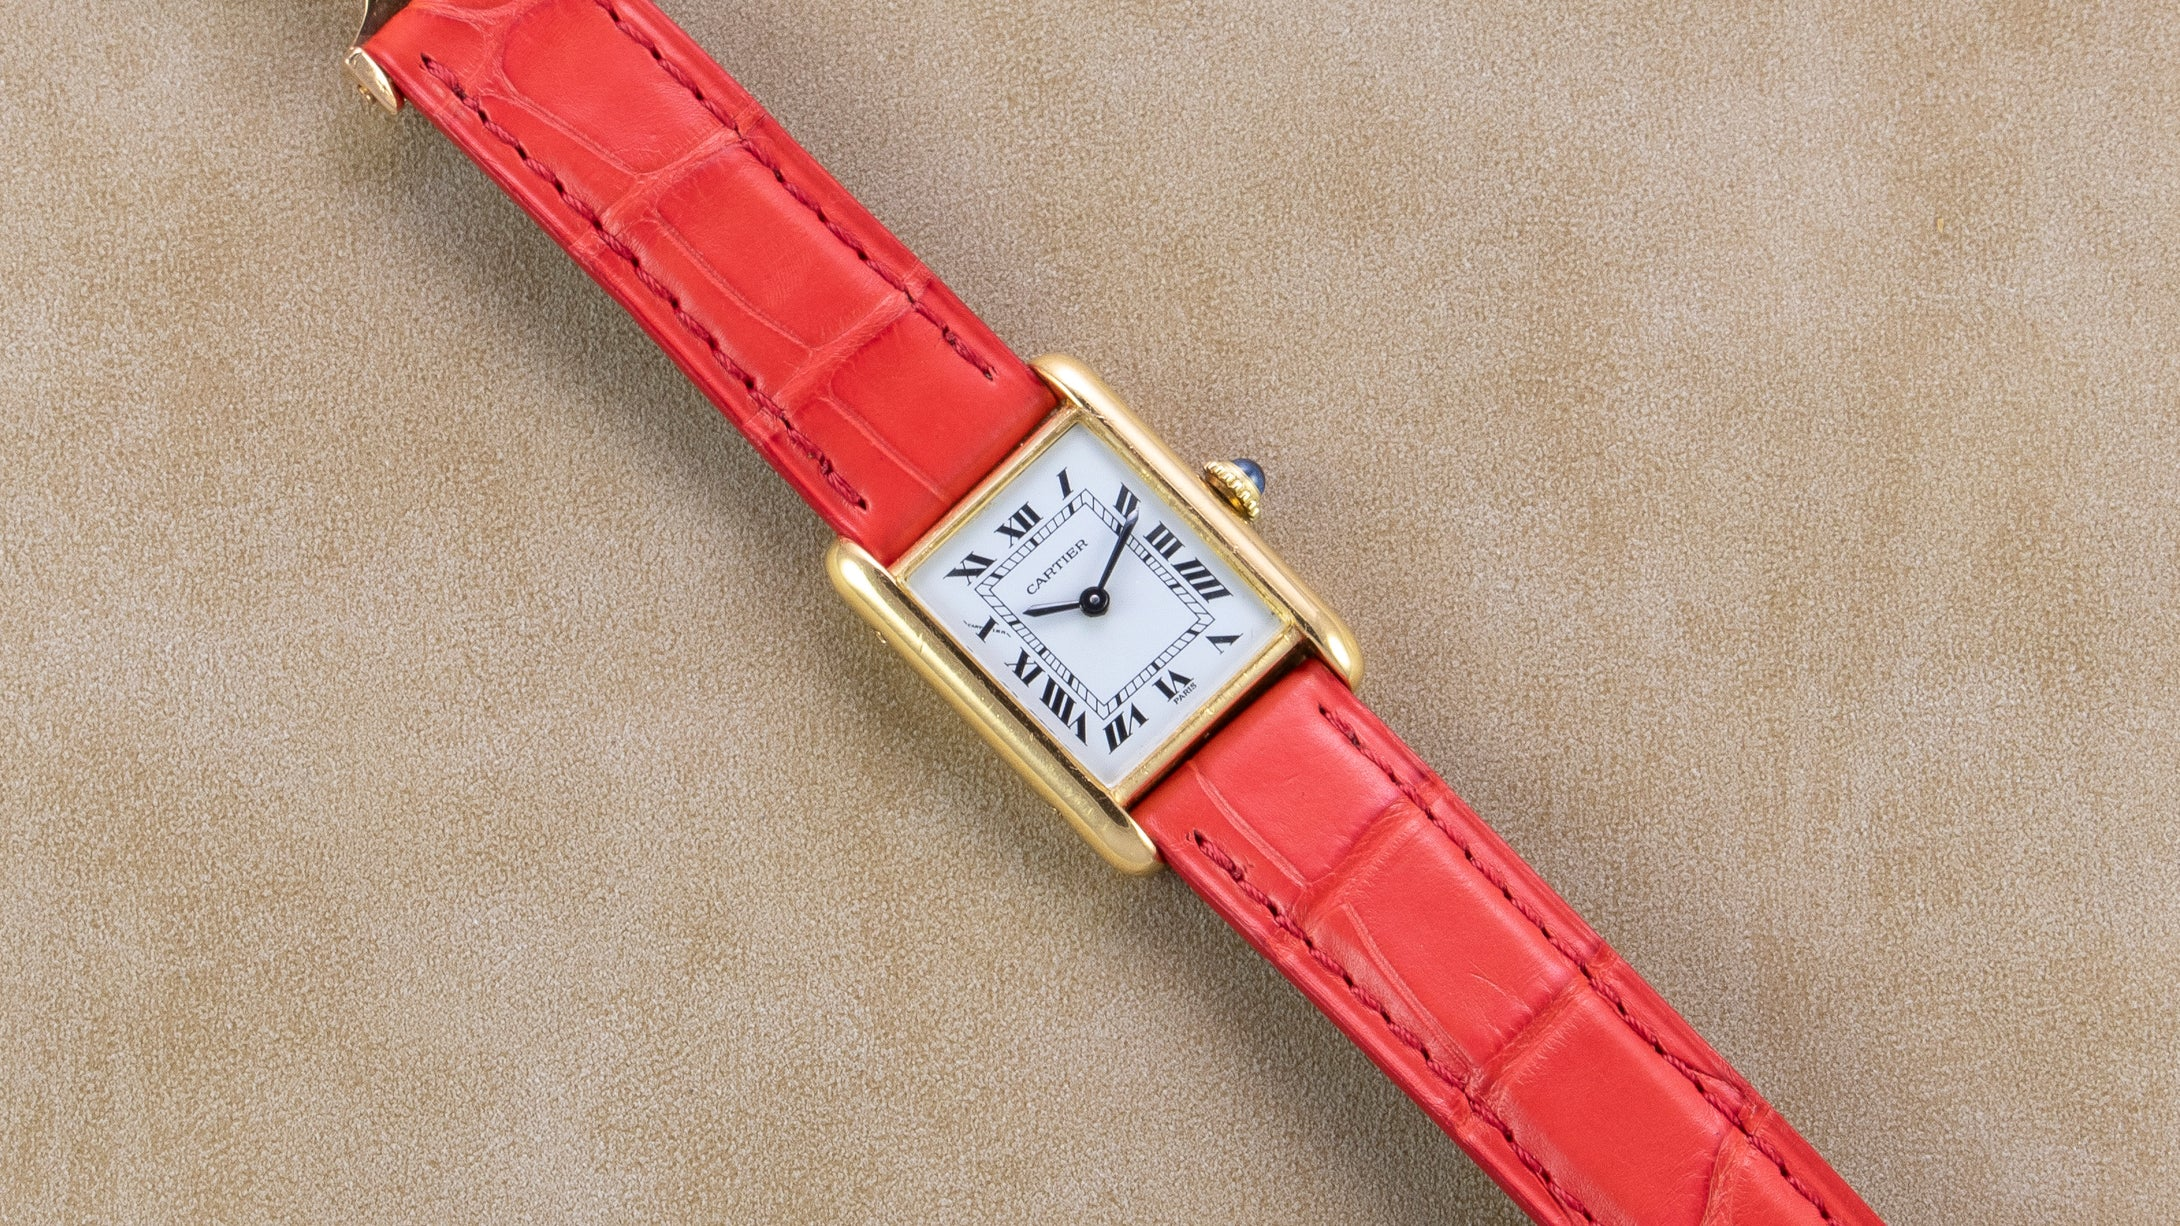 Cartier 18K Yellow Gold Tank Louis Manual Wind Vintage Watch | Veralet